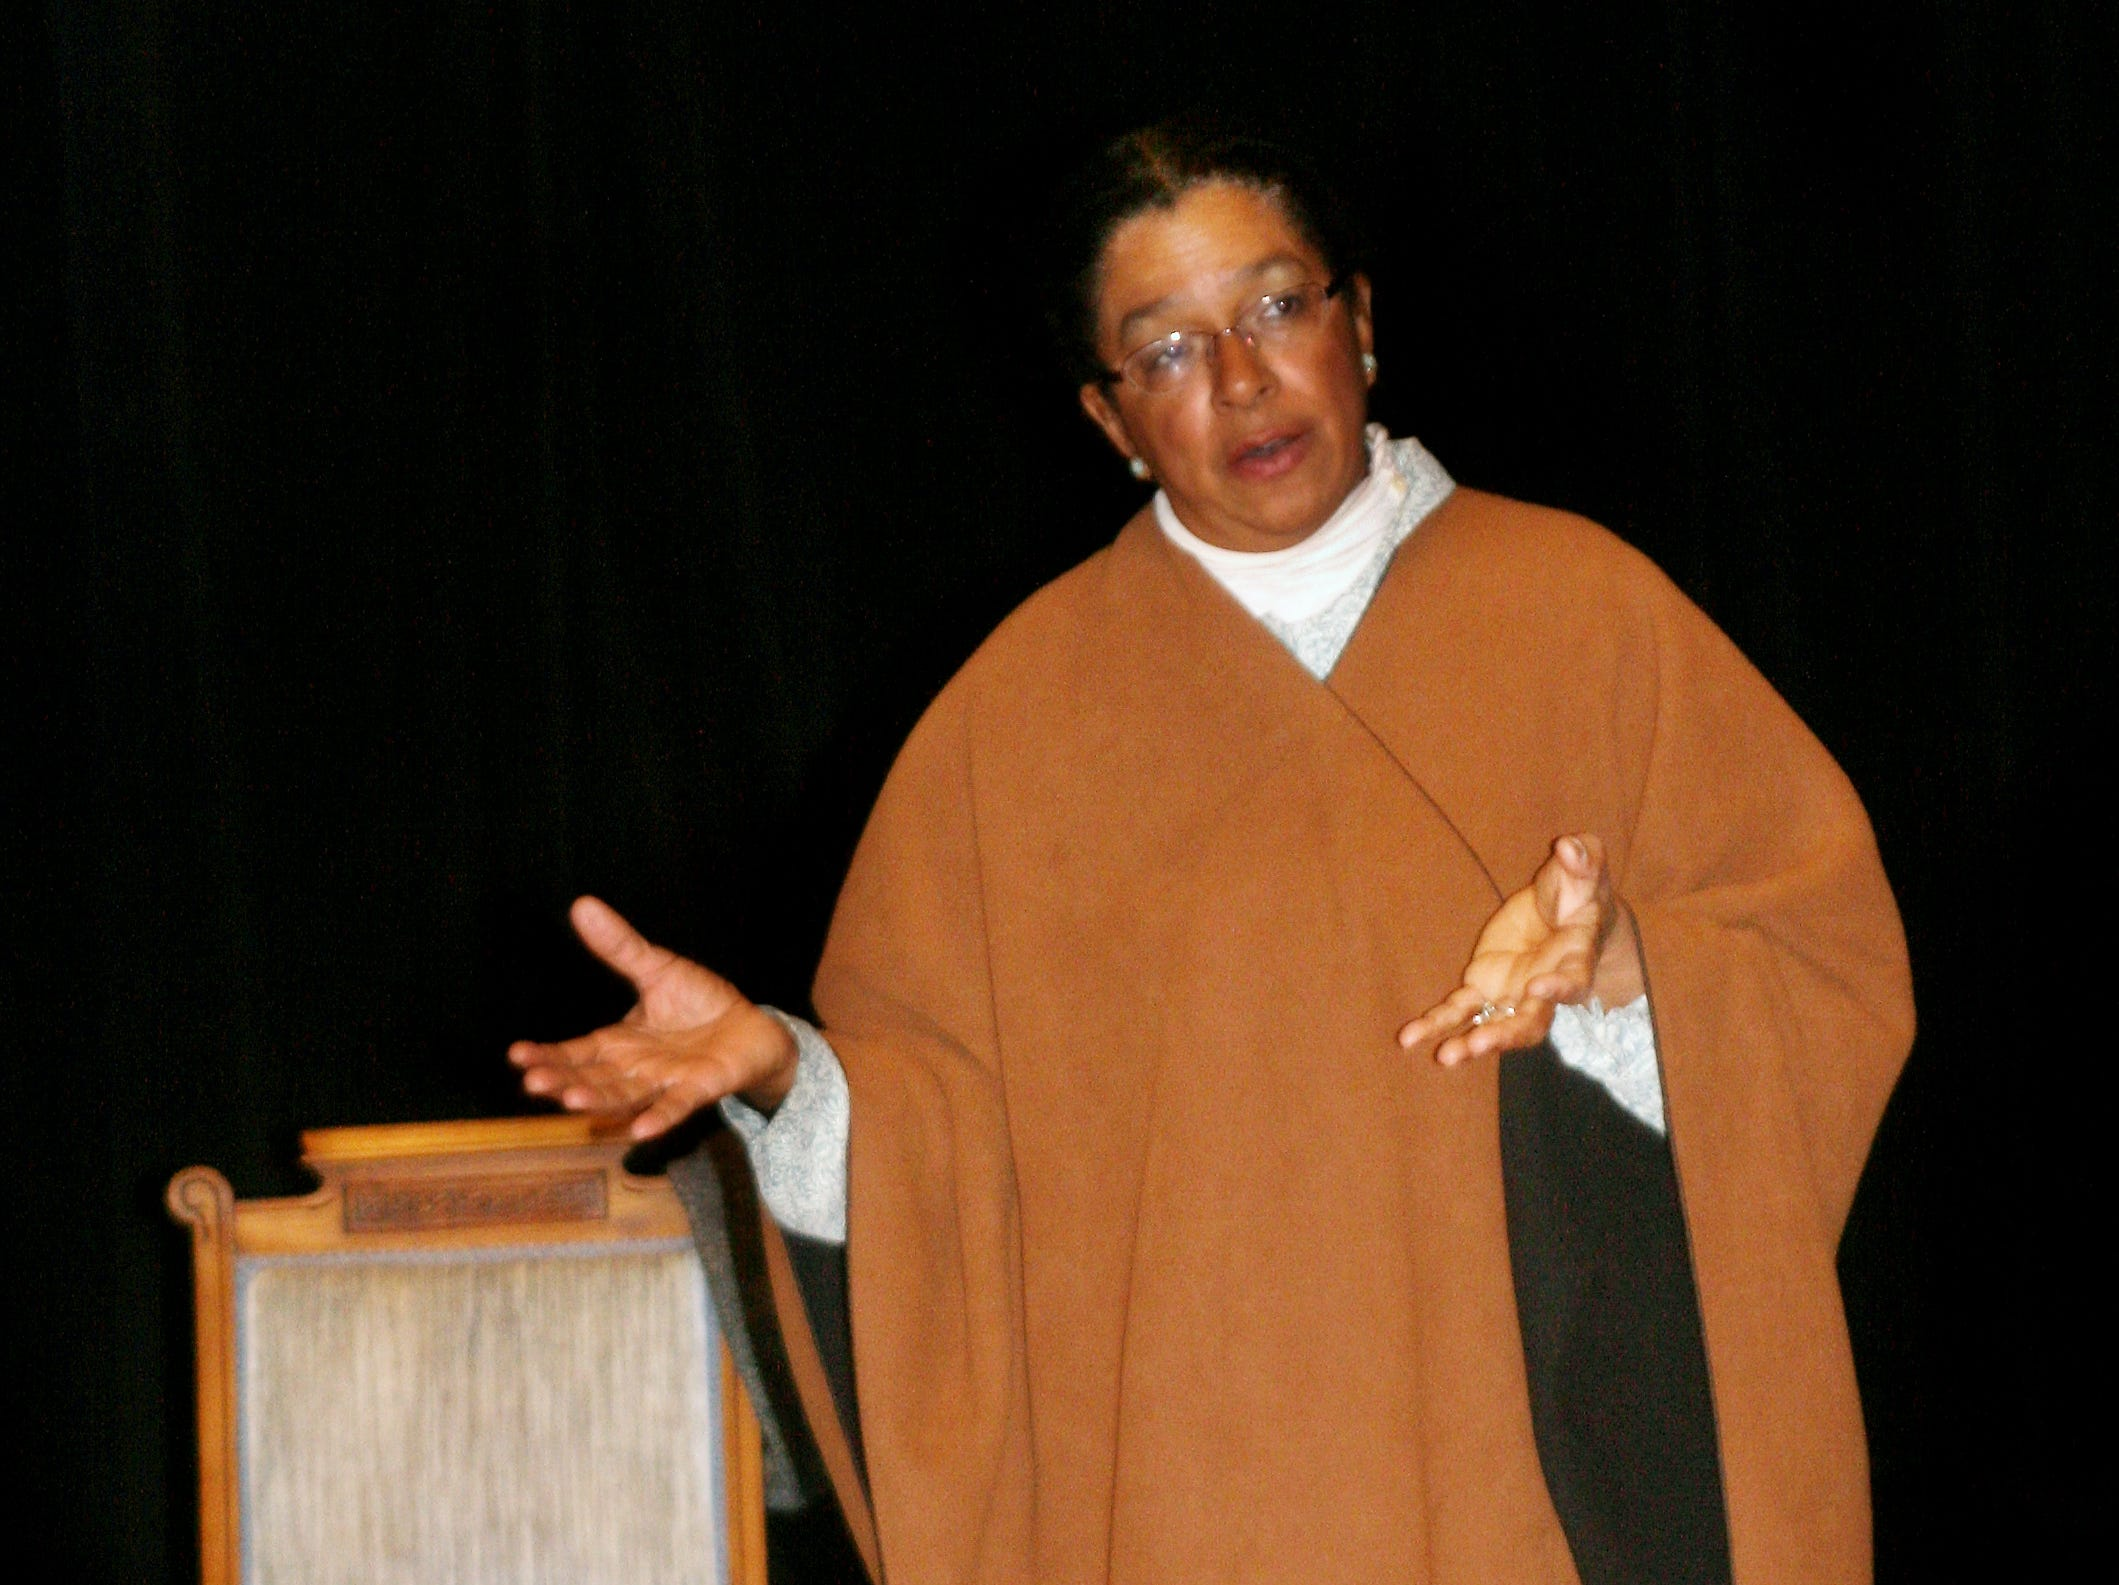 2011: Storyteller Vicie Rolling portrays Lear Green, a young slave who escaped to freedom on a ship in a steamer trunk, during a performance Monday at 171 Cedar Arts Center in Corning.